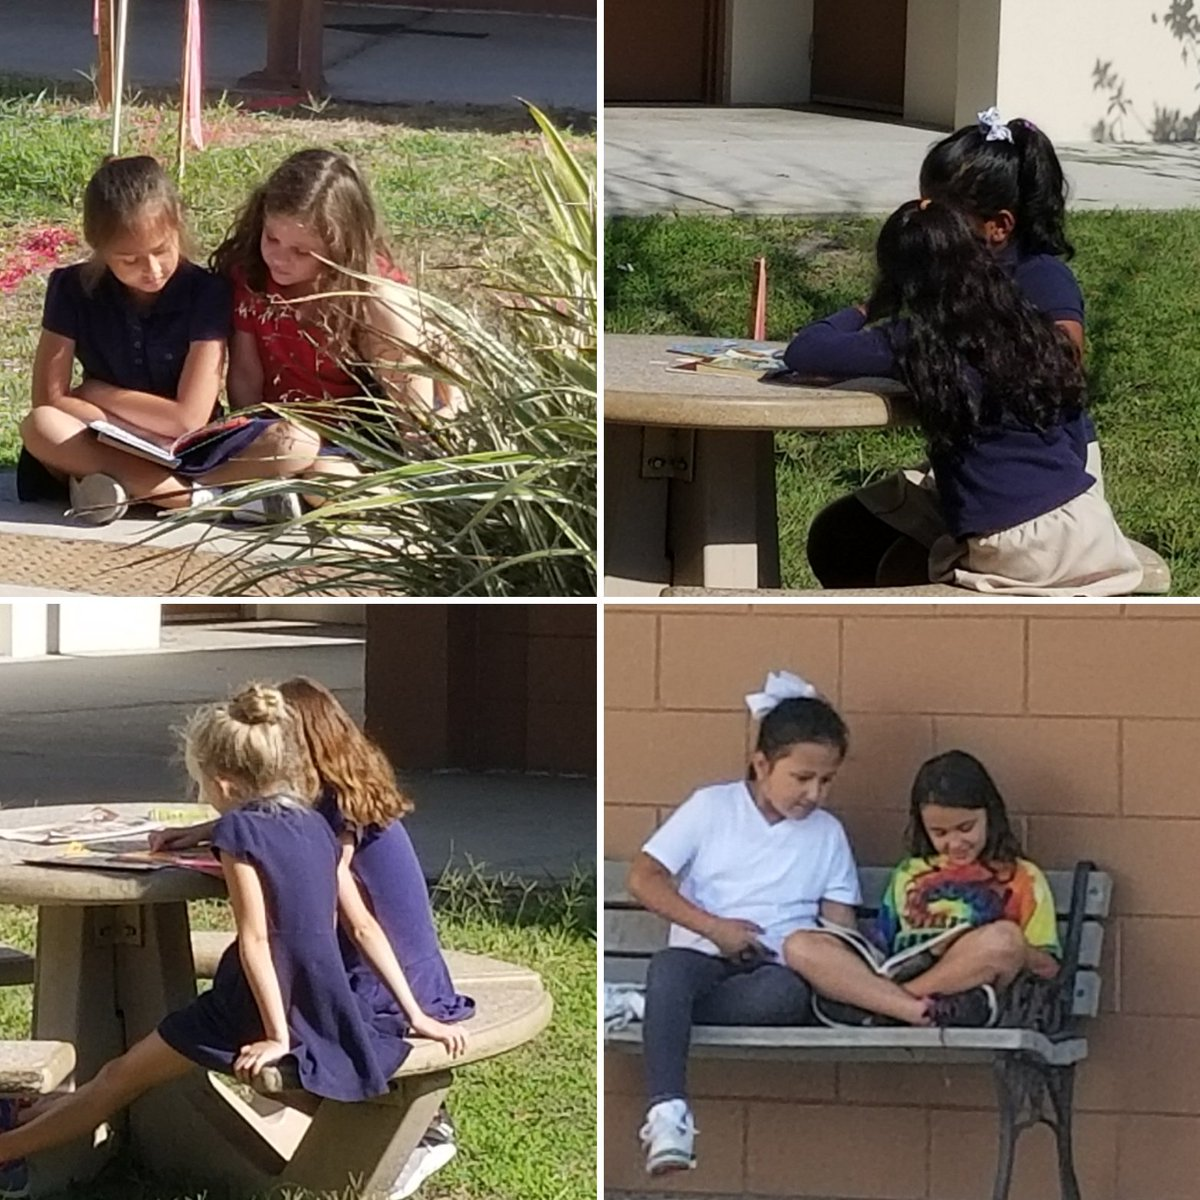 Buddy reading while enjoying the cooler temps. #hcpsteach #endoftheyear @HCPSRiverhills